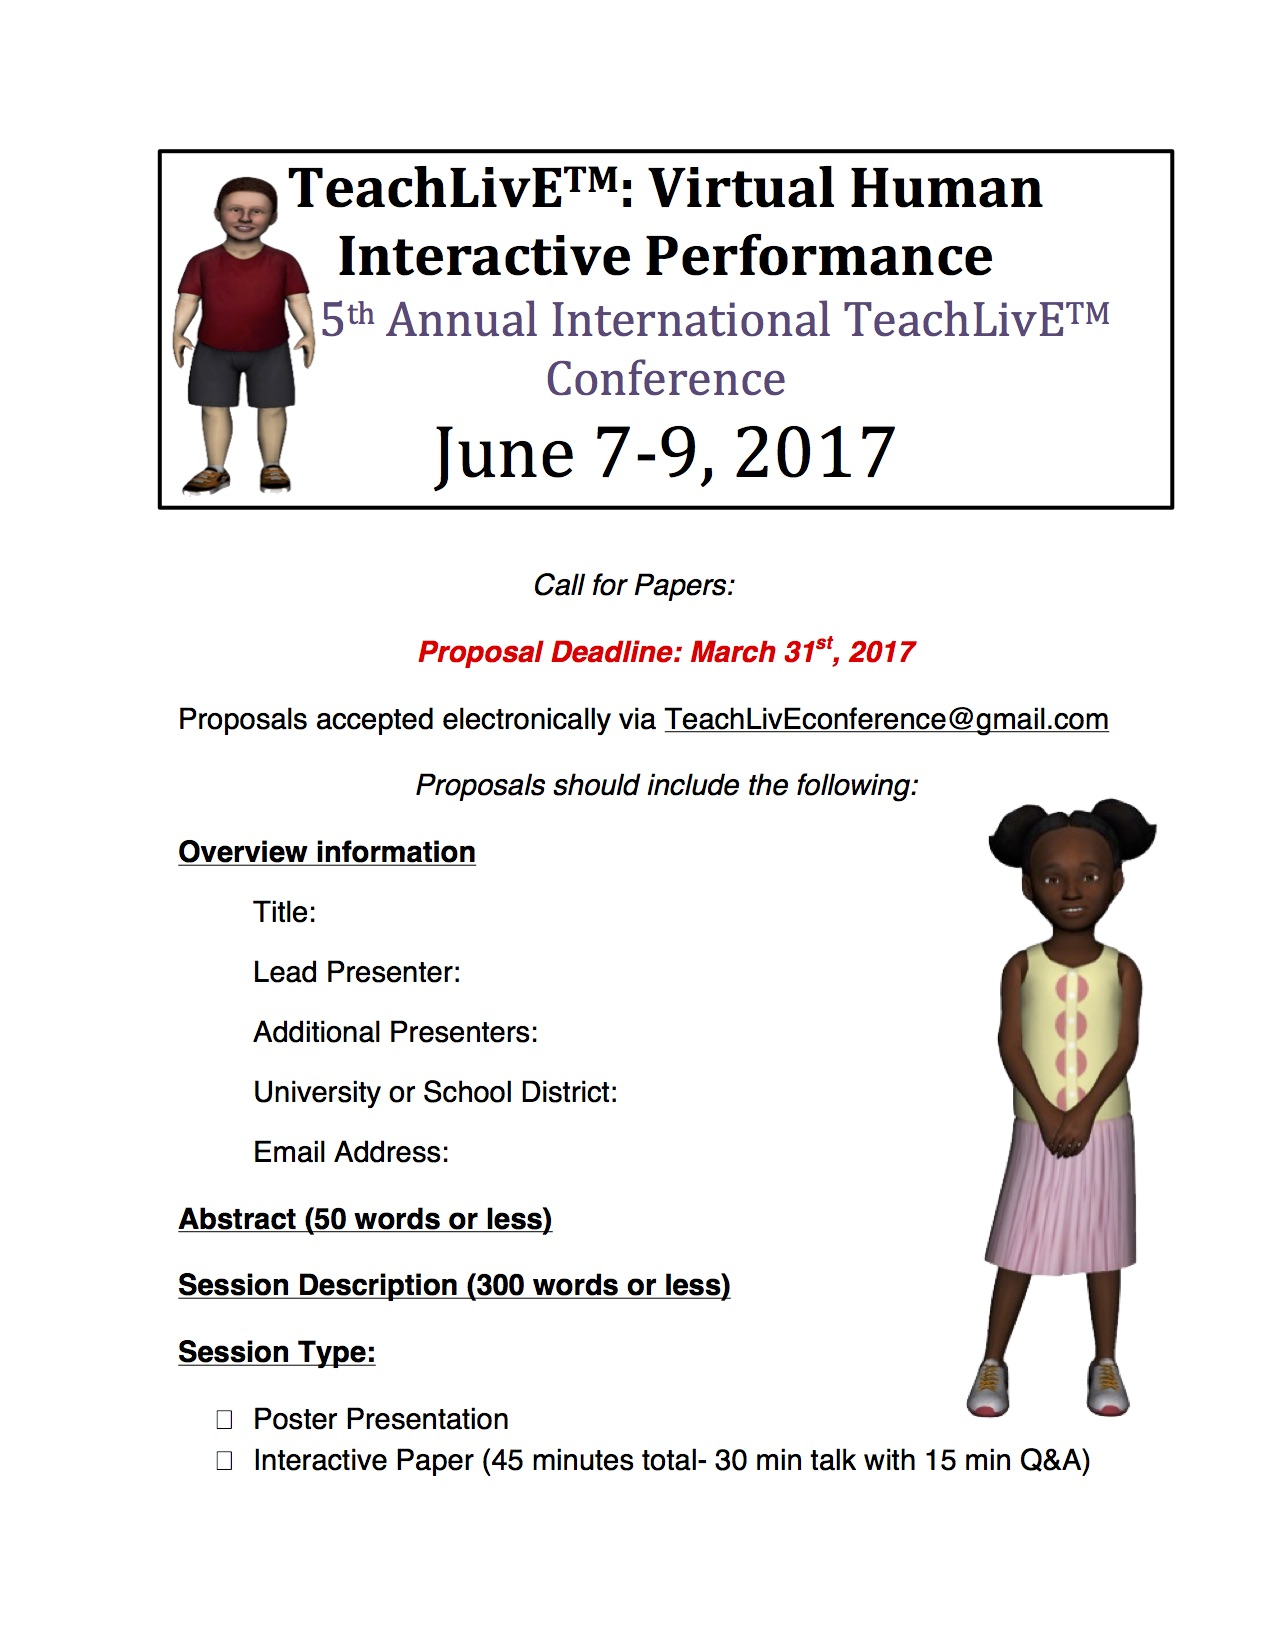 5th Annual Call for Proposals image